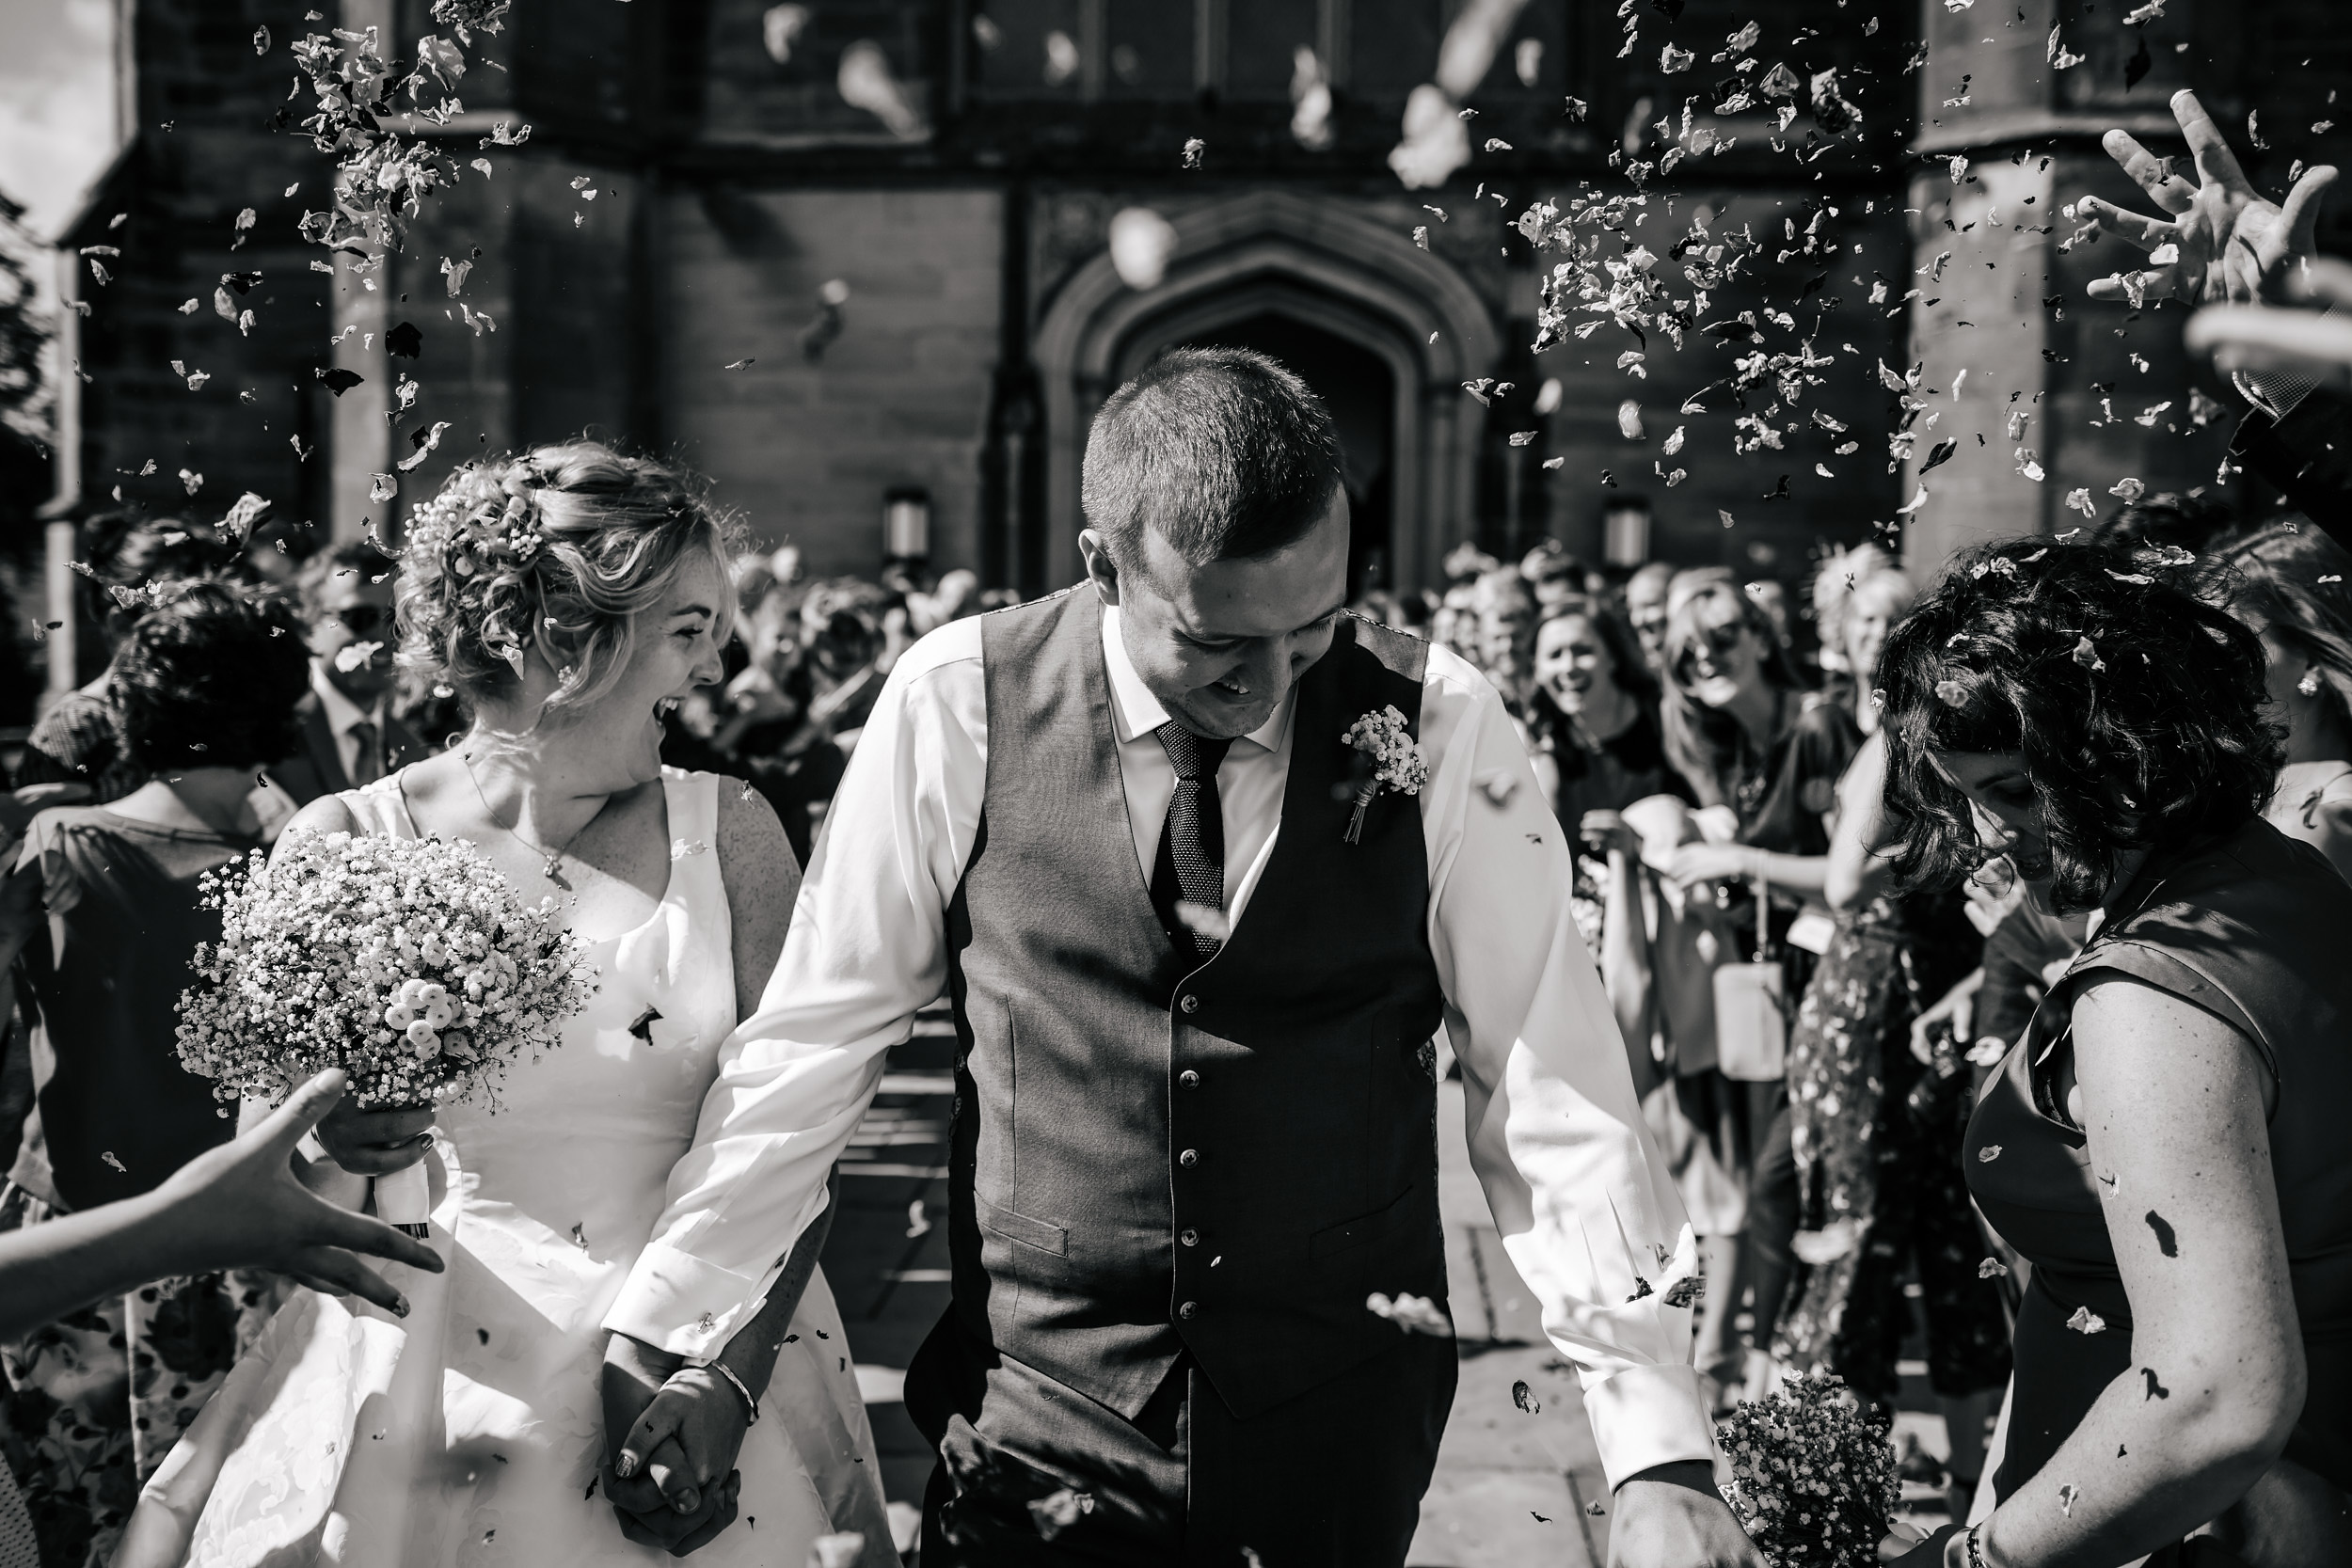 Bride and groom with confetti on their wedding day